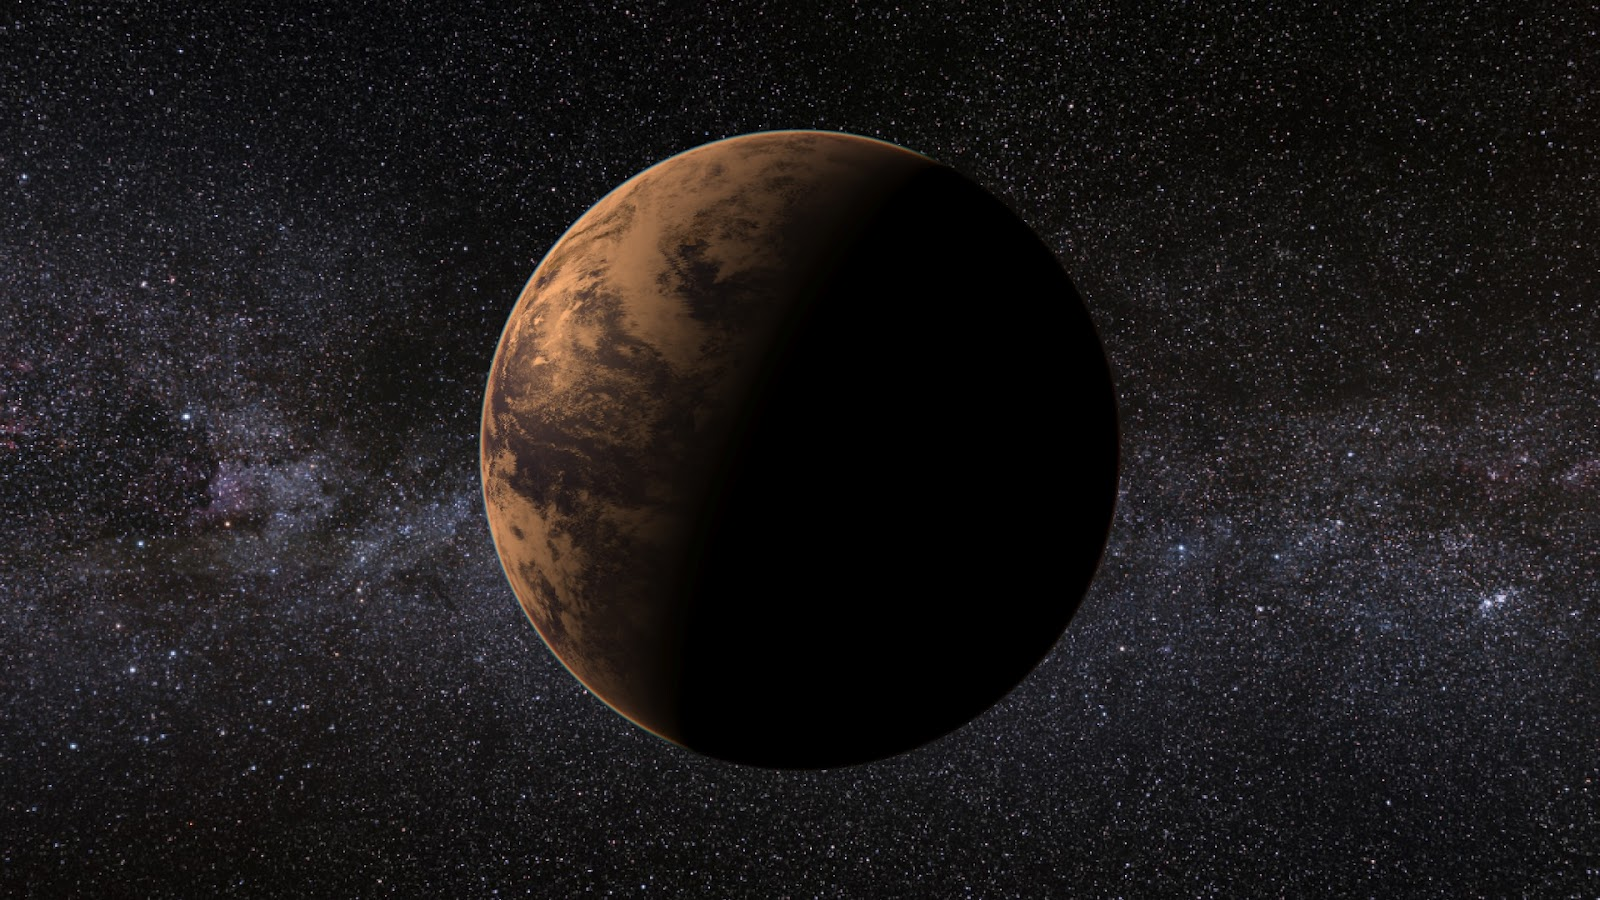 gliese 667cc on gravity - photo #14